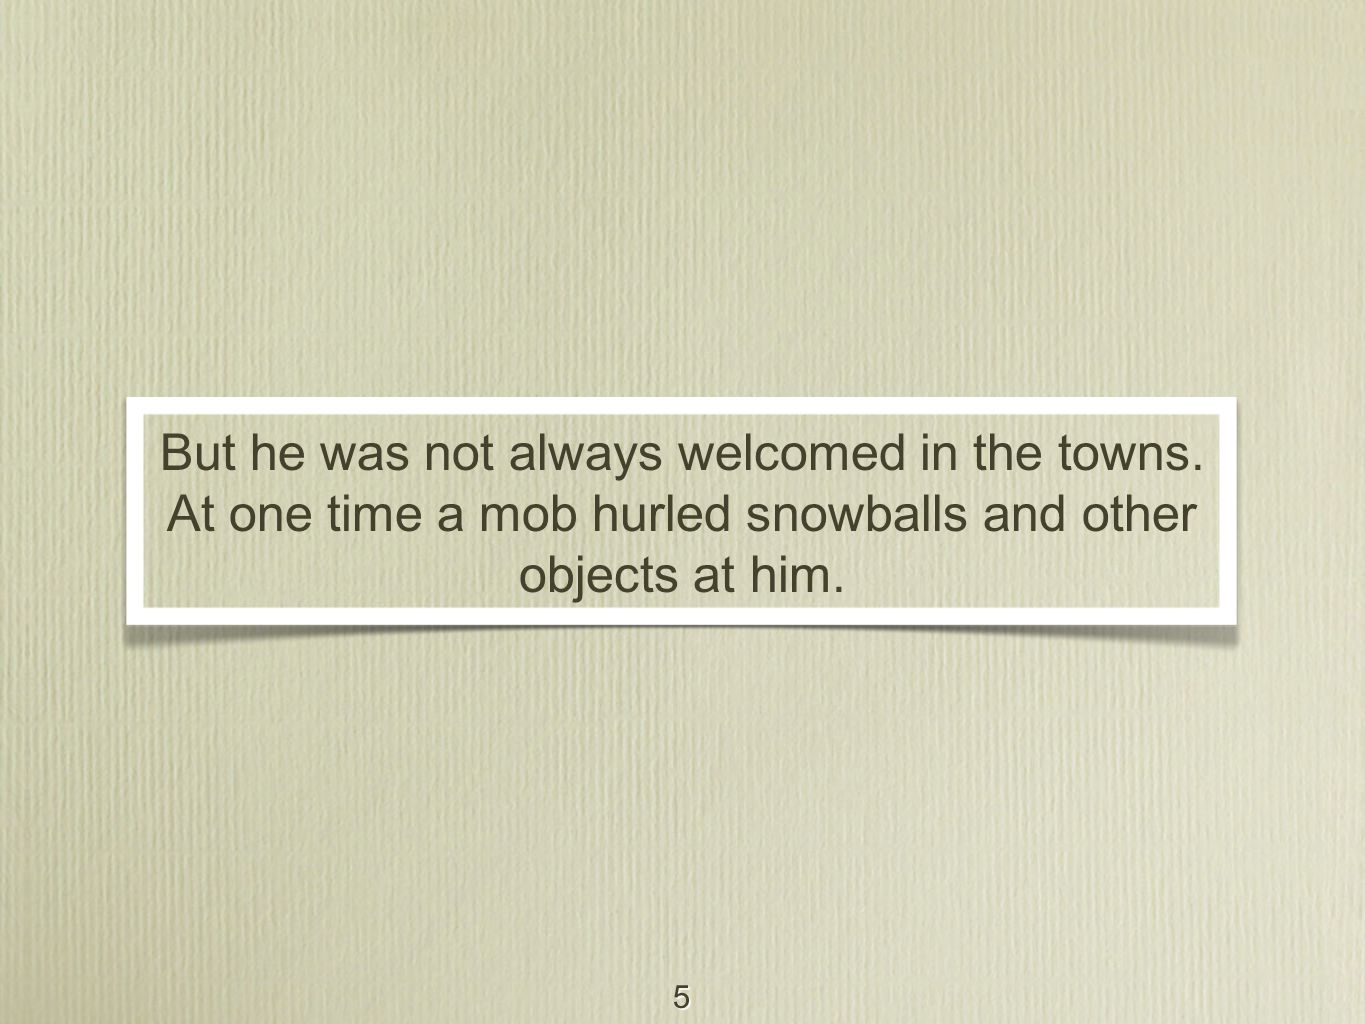 5 But he was not always welcomed in the towns. At one time a mob hurled snowballs and other objects at him.